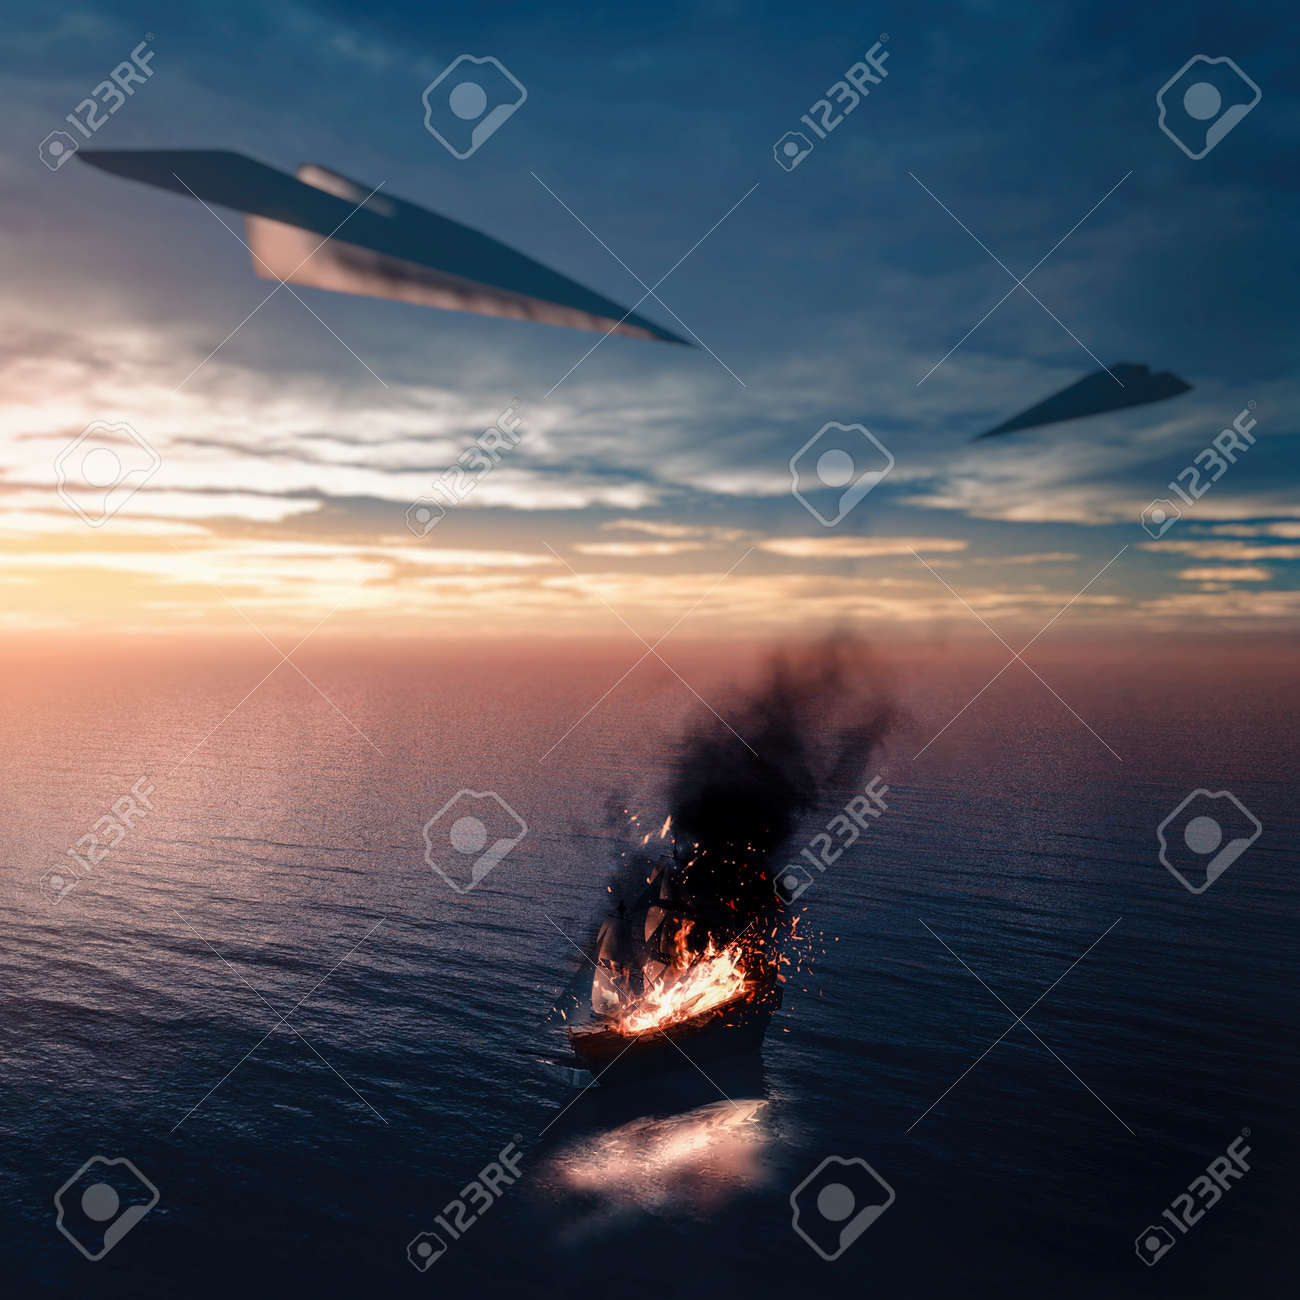 Ship in the ocean on fire. Ship attacked by airplanes of paper . - 120259631